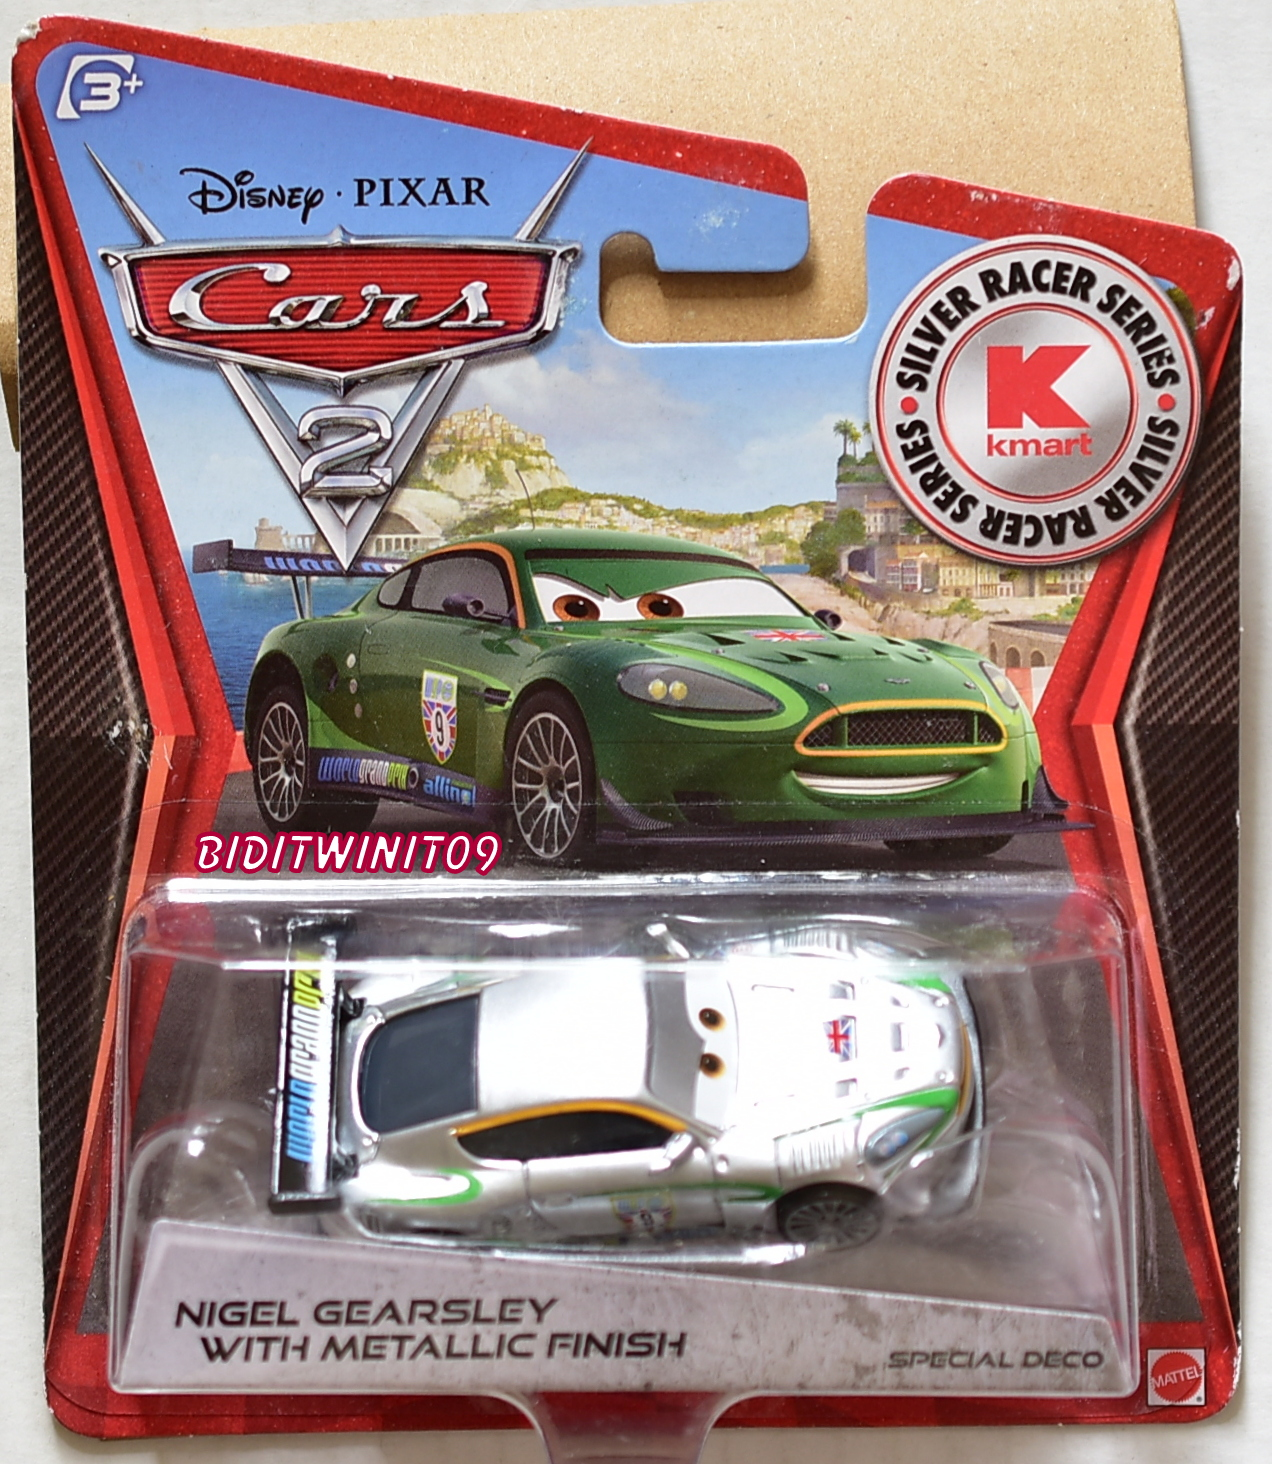 DISNEY PIXAR CARS 2 KMART EXCLUSIVE NIGEL GEARSLEY WITH METALLIC FINISH